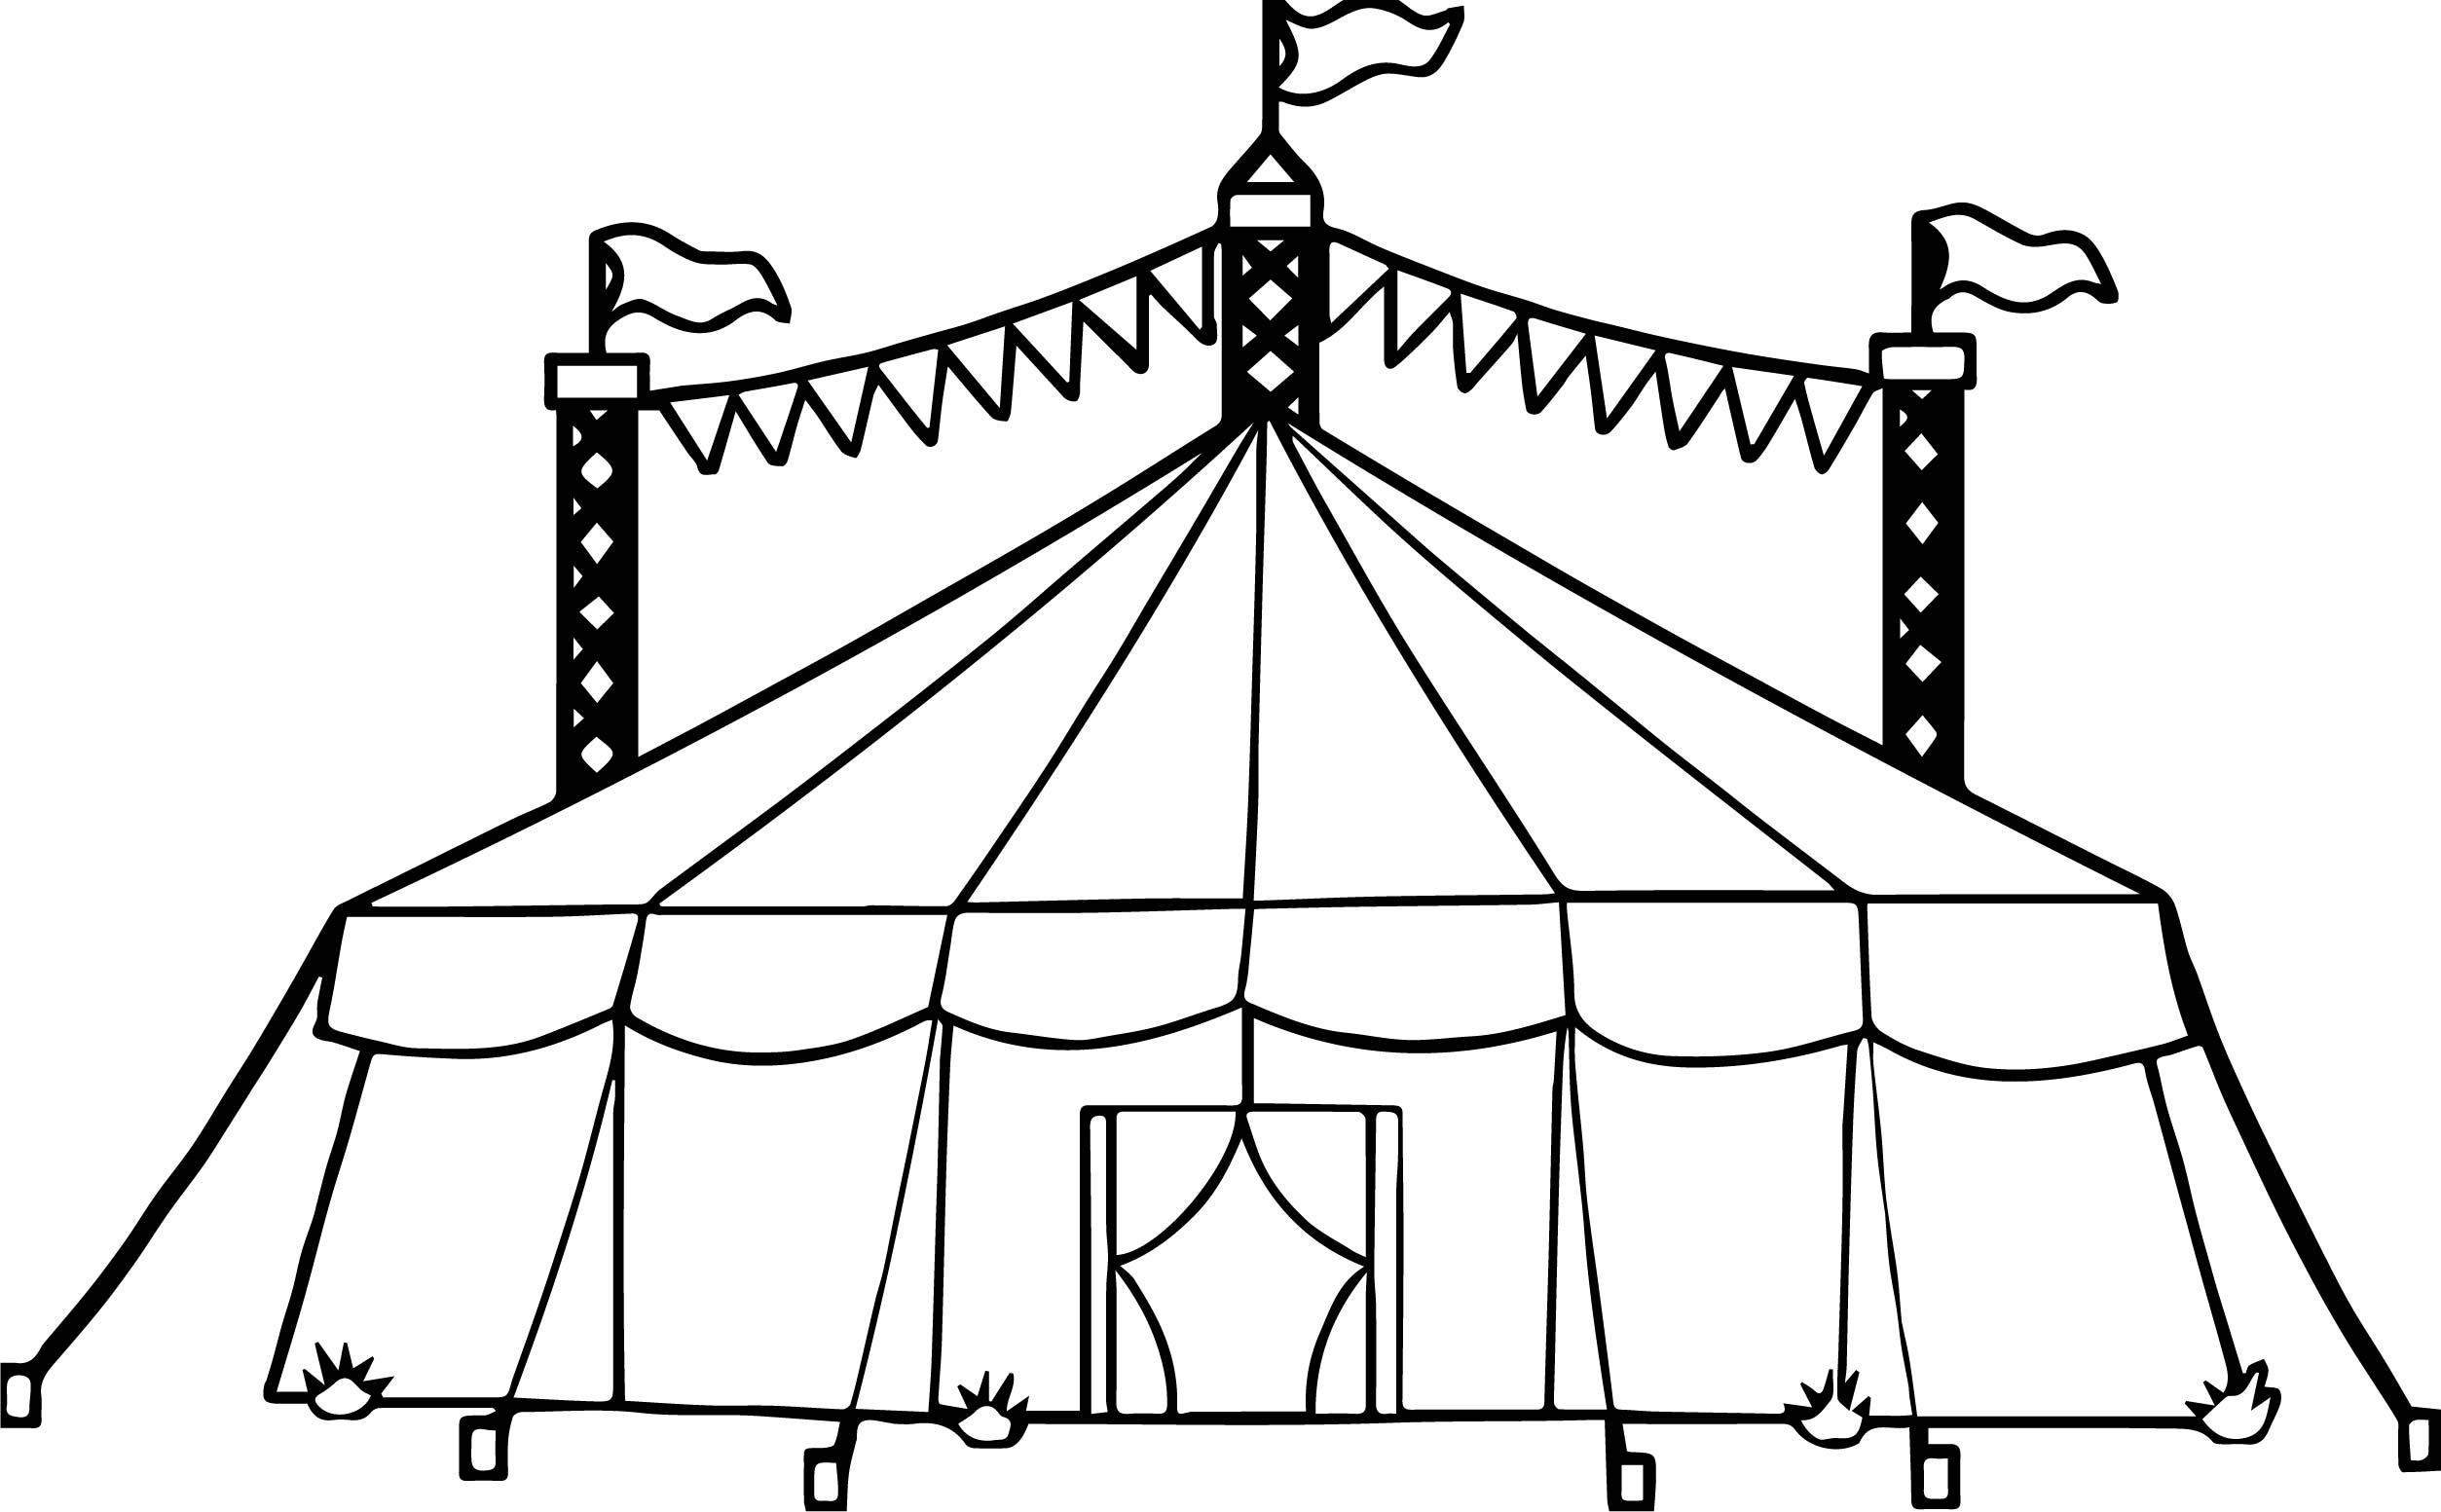 Amusement Circus Tent Coloring Page Circus Tent Circus Tent Drawing Coloring Pages